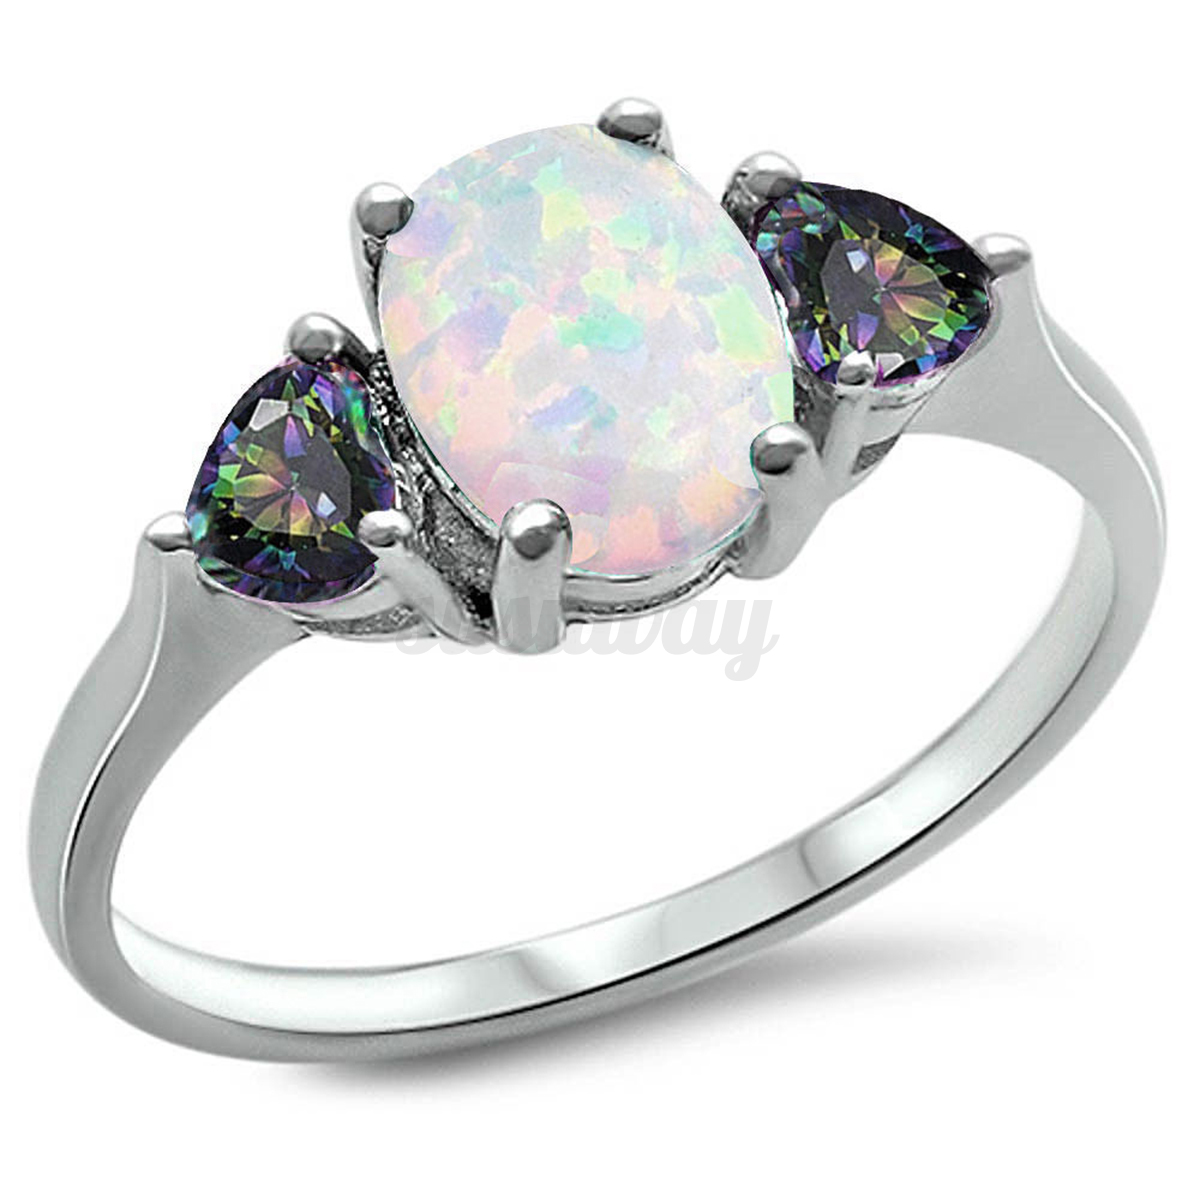 Sterling Silver Australian White Fire Opal Ring Wedding Engagement Size 6 9